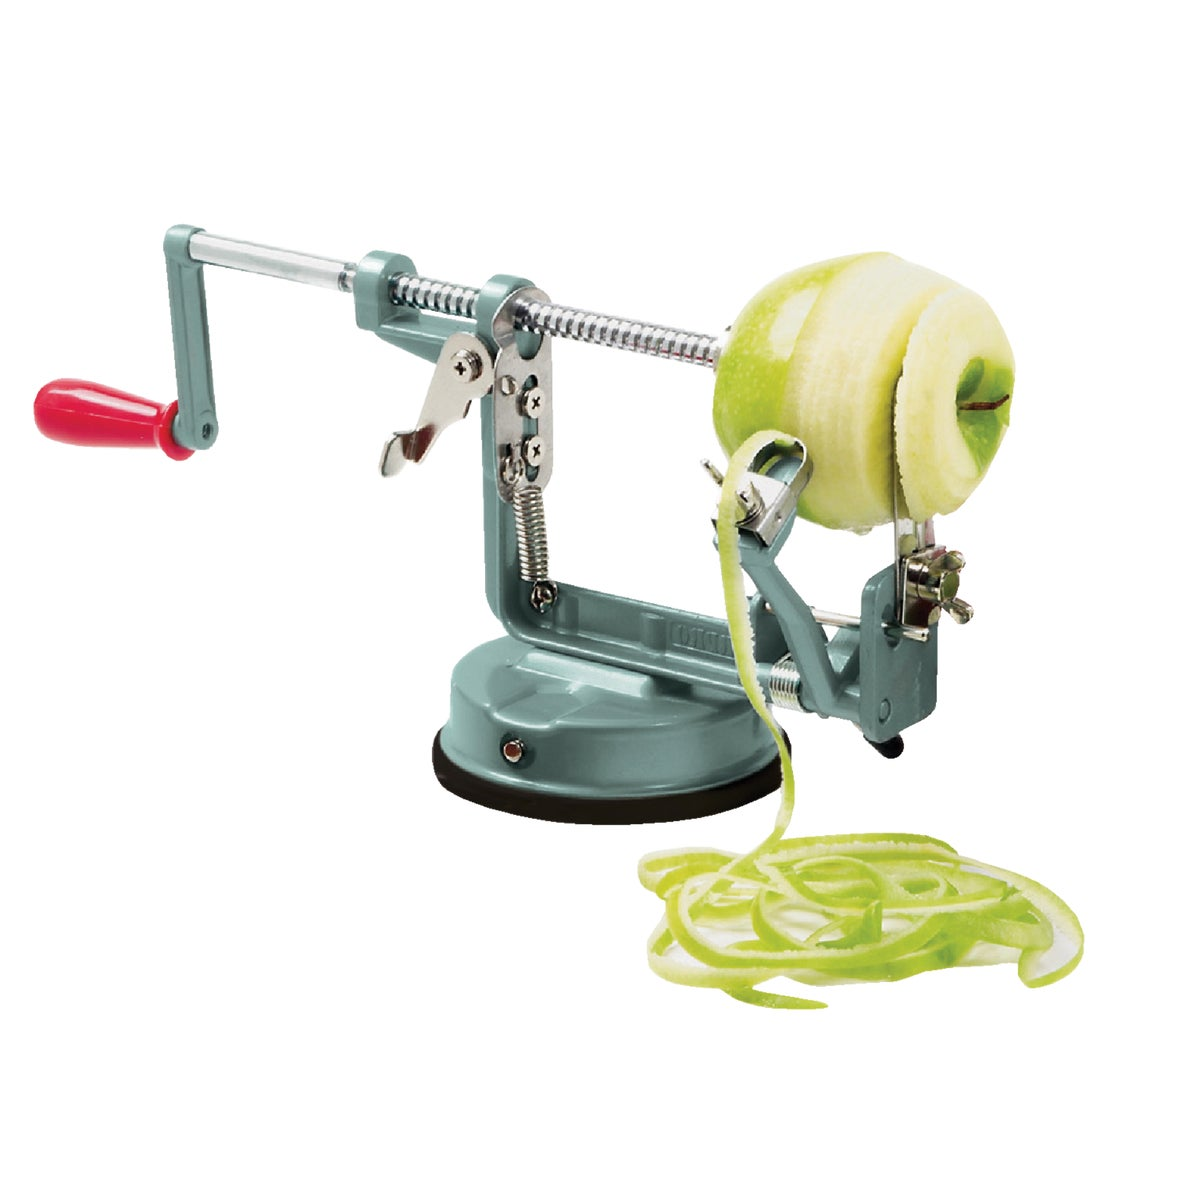 APPLE PARER/SLICER/CORER - 866 by Norpro